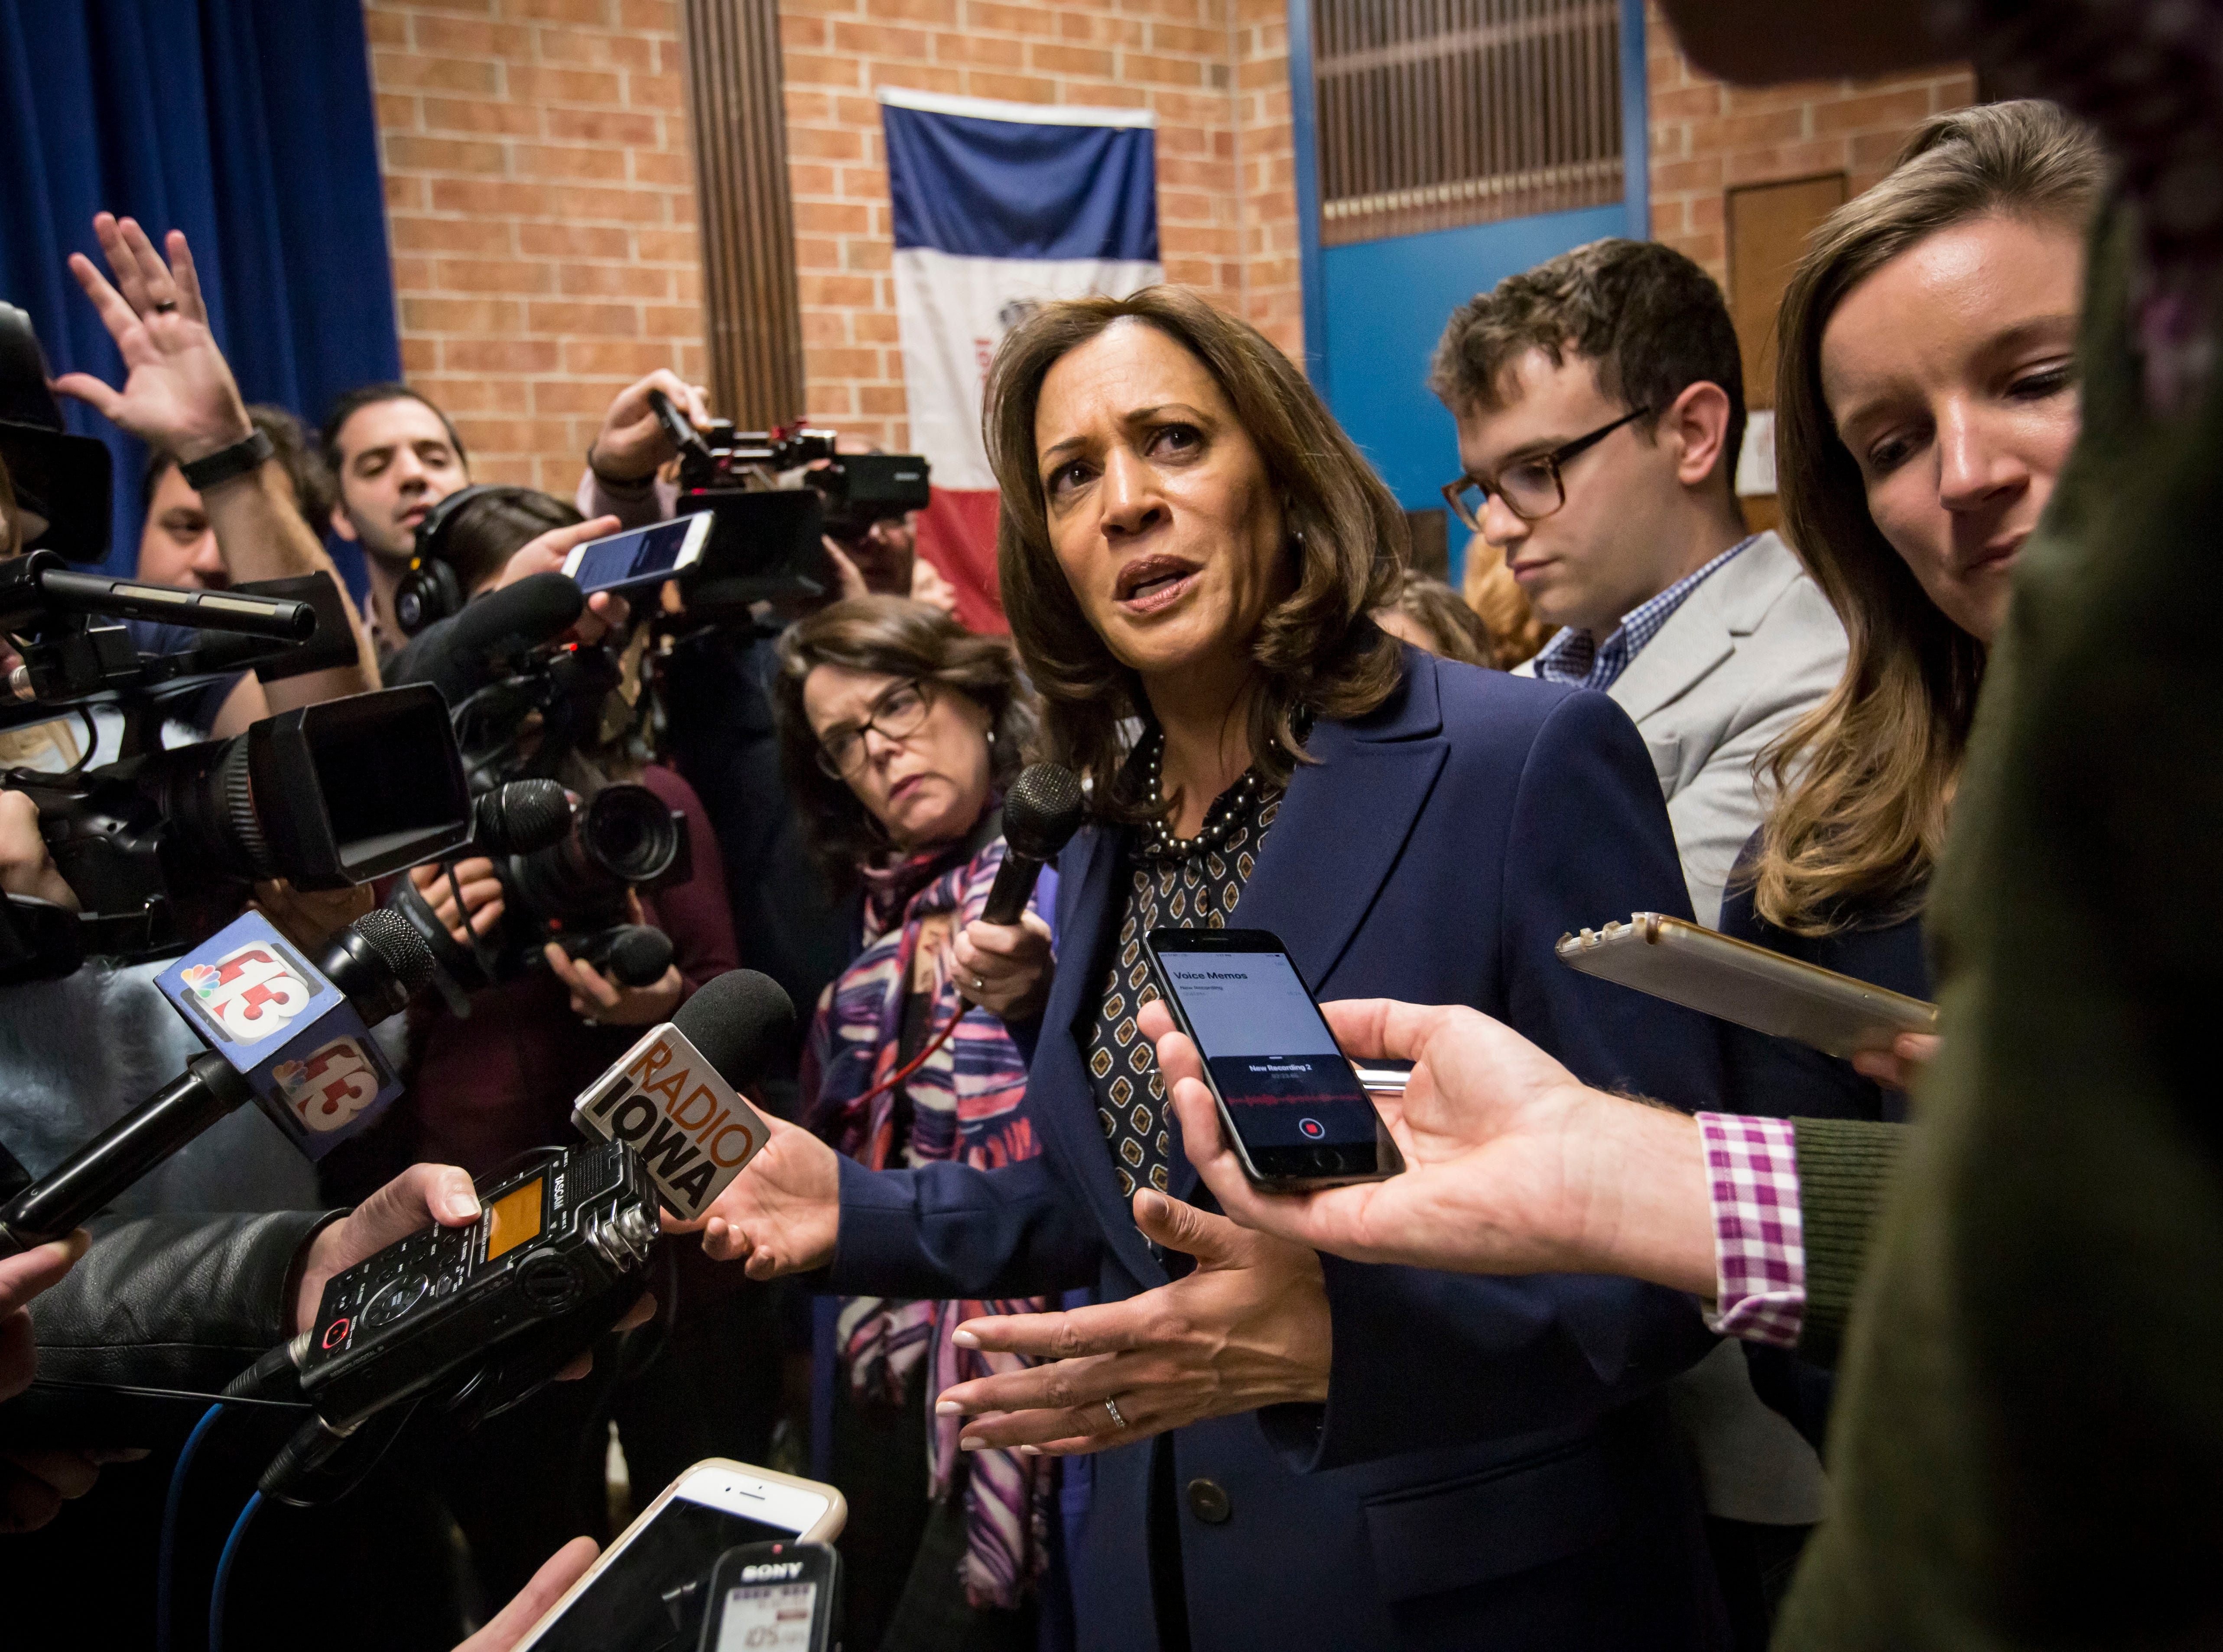 Democratic Senator Kamala Harris of California talks to the media after a DMACC Early Vote rally  Monday, Oct. 22, 2018, in Ankeny, Iowa. She appeared with Congressional candidate Cindy Axne, State Senate candidate Amber Gustafson and Iowa House candidate Heather Maston.